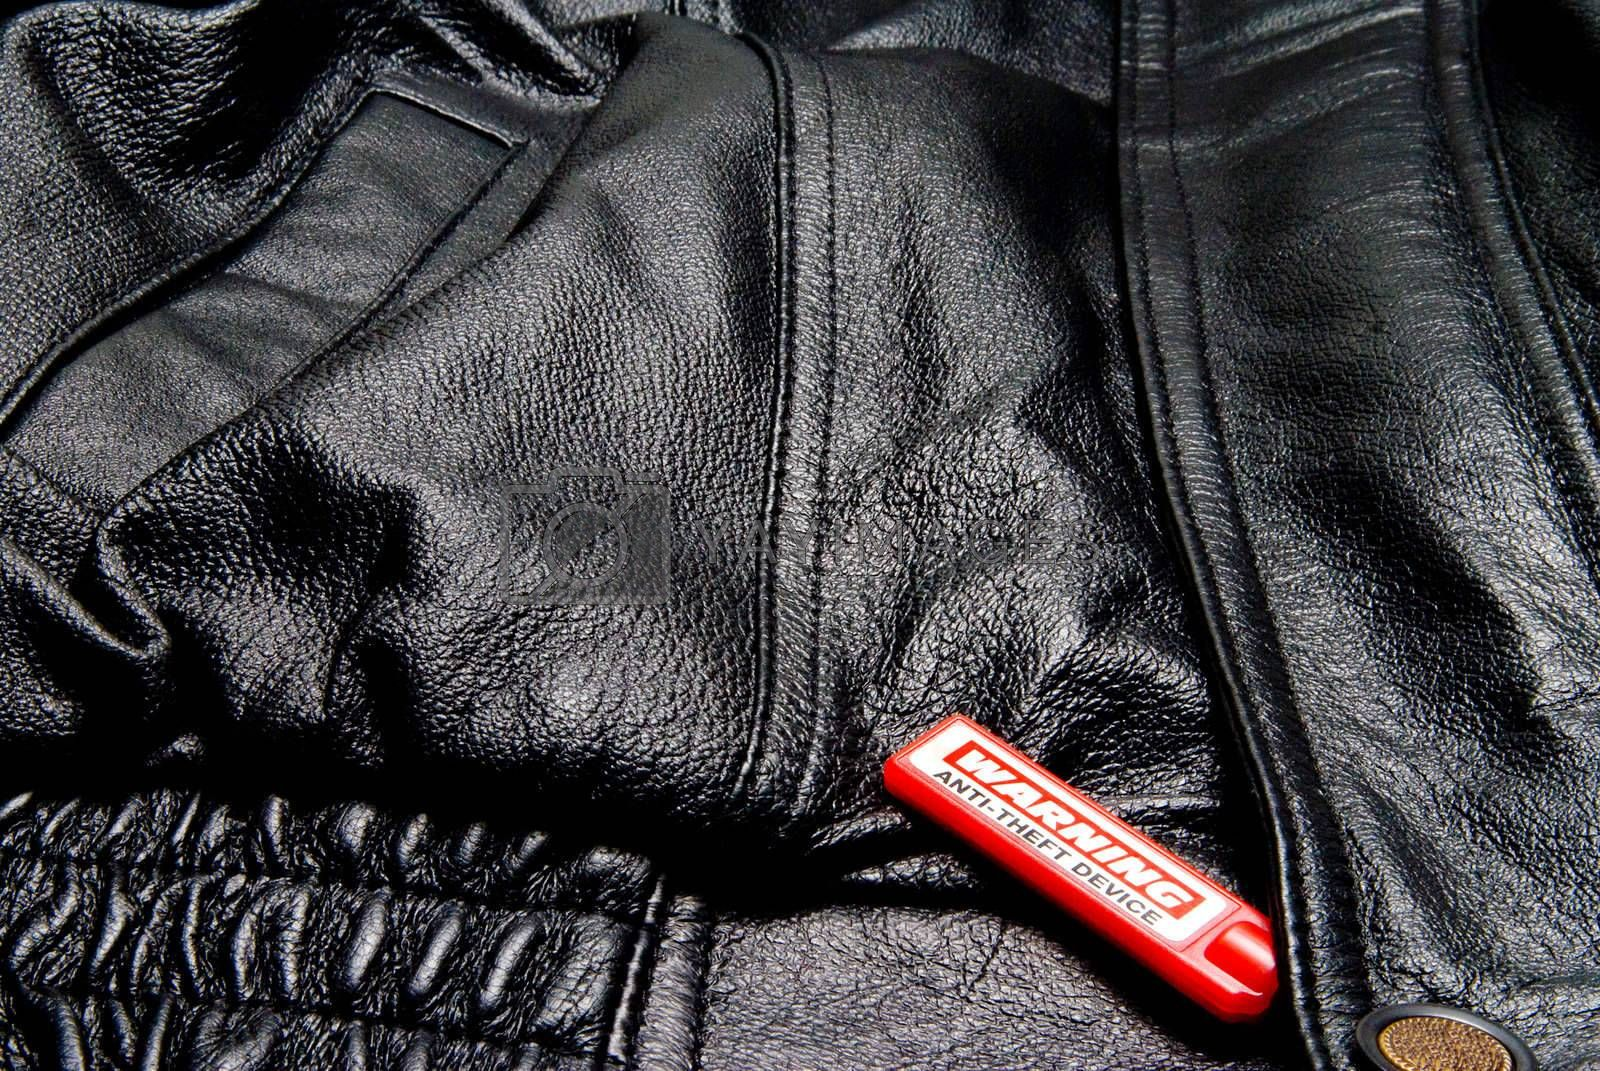 An anti theft device on an expensive article of clothing.